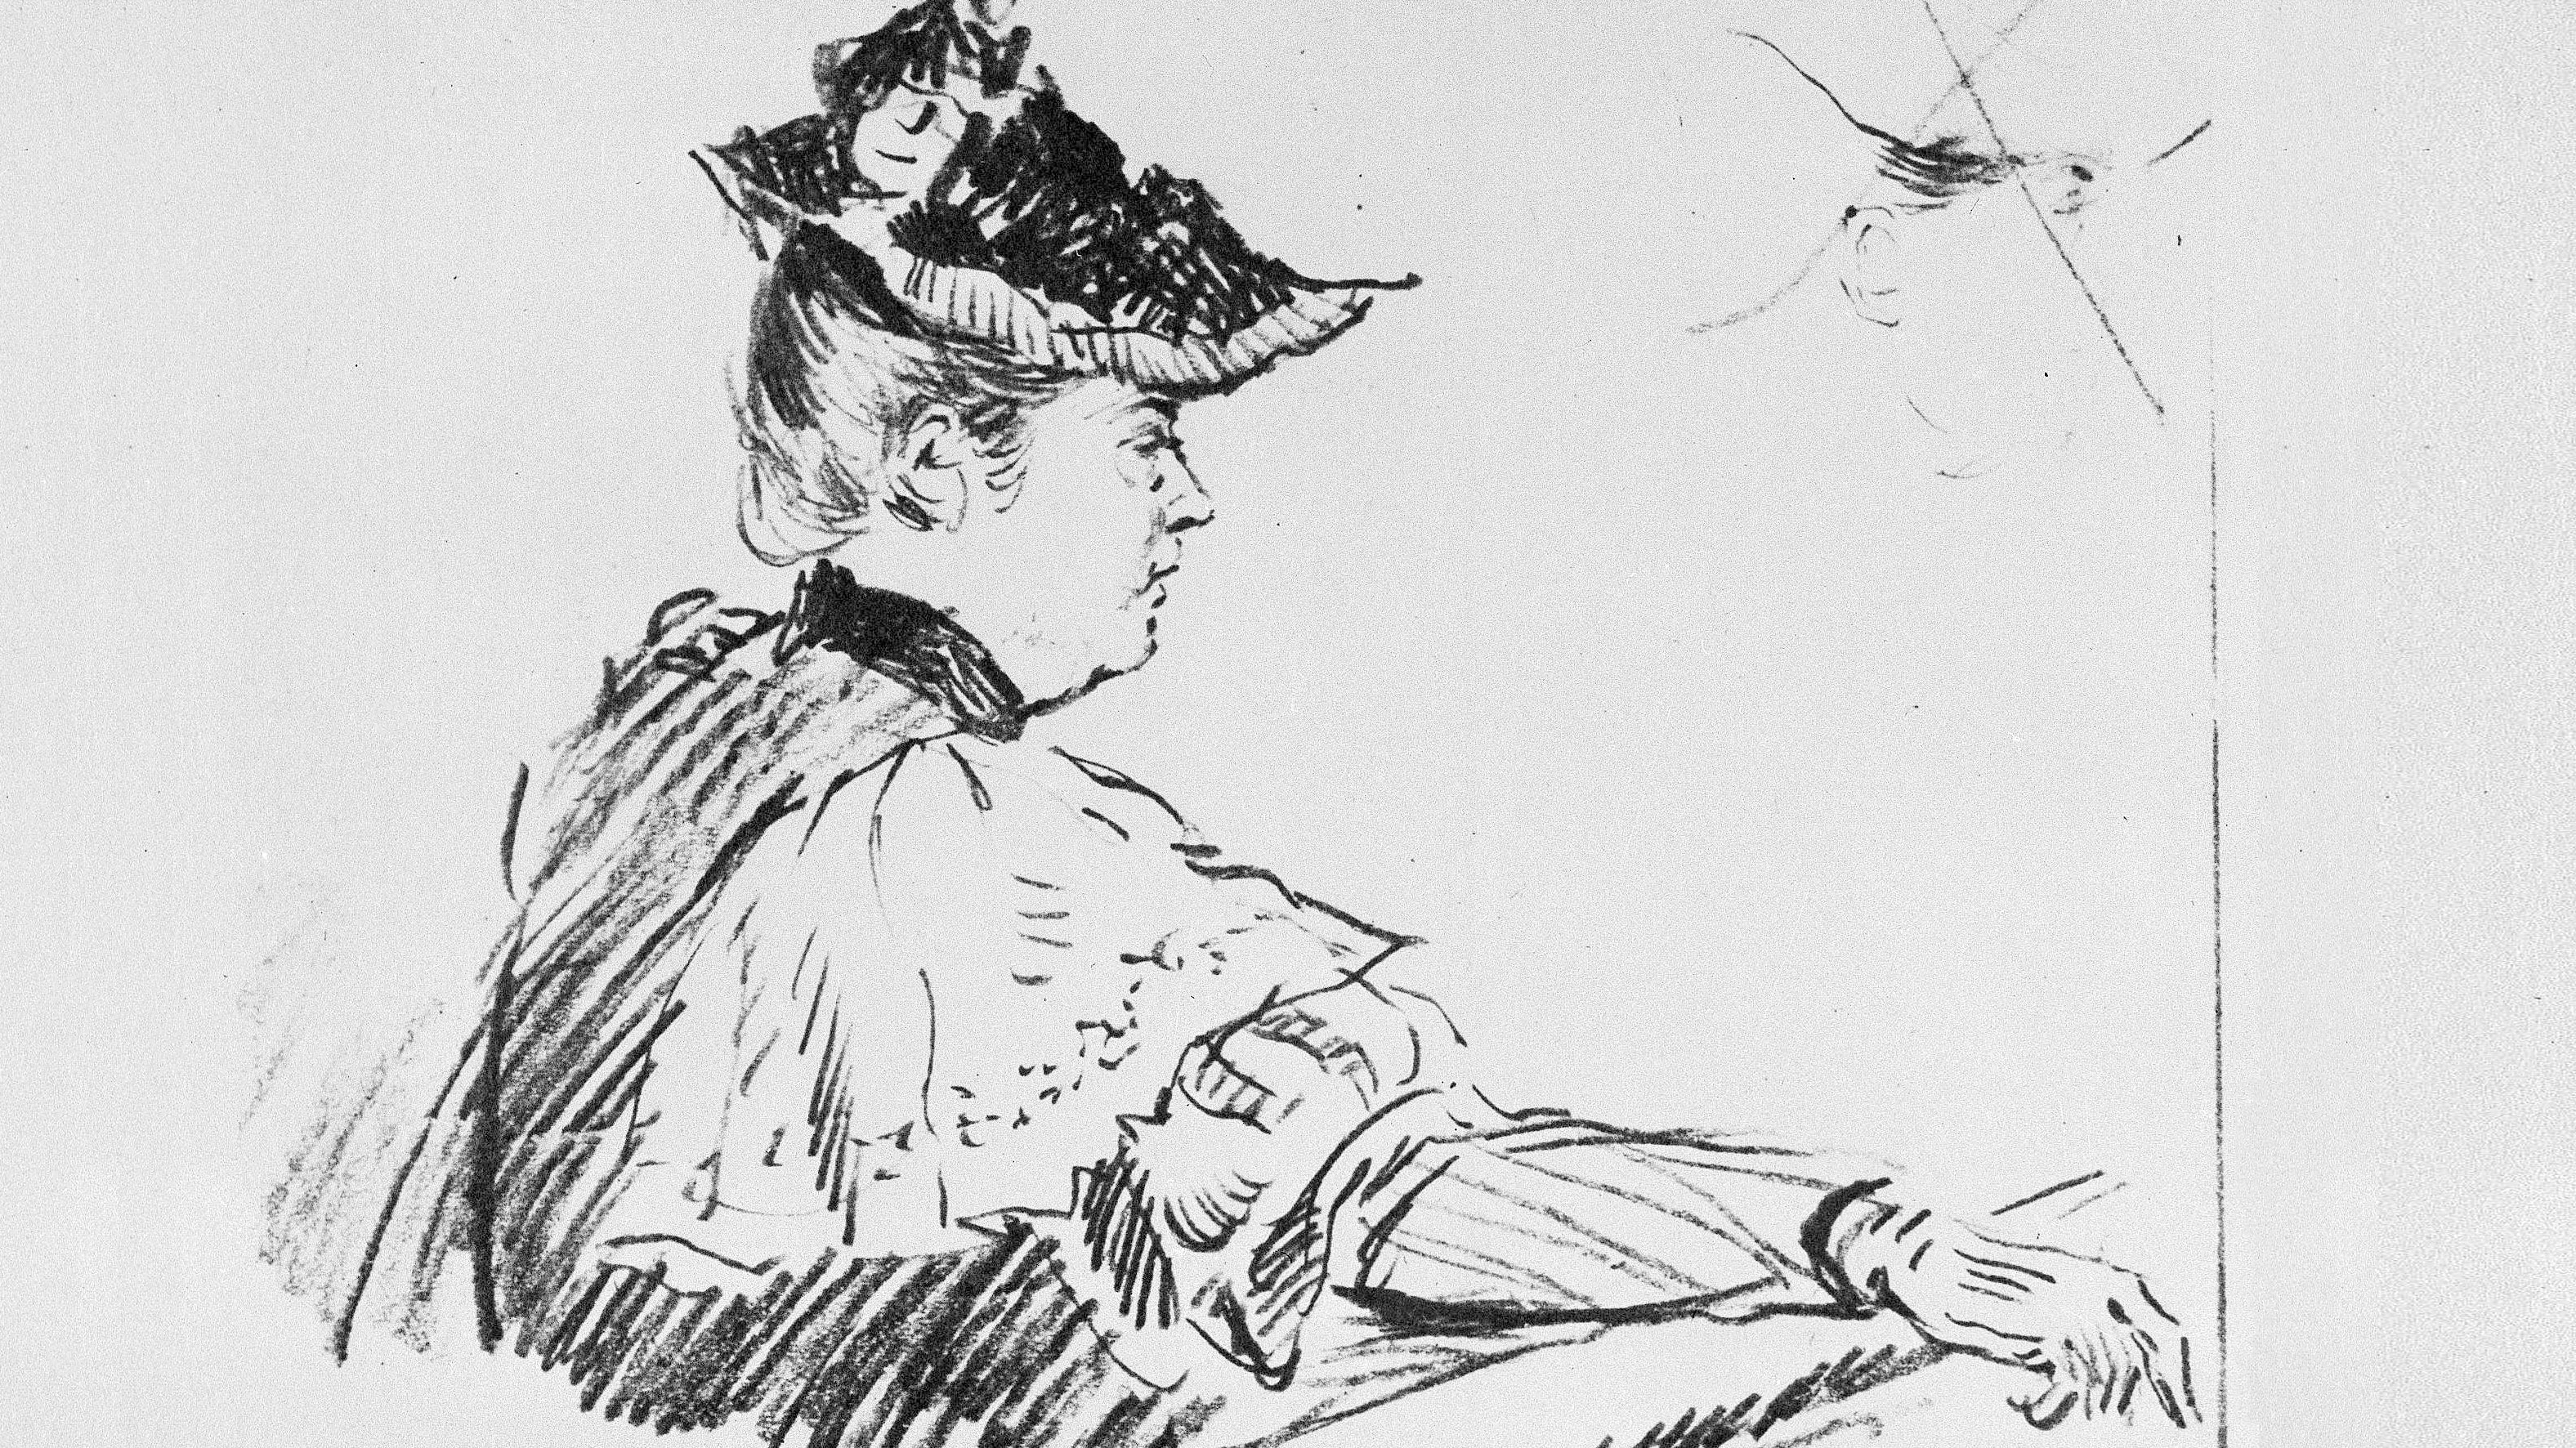 Lizzie Borden: How Could a 'Prim and Proper' Victorian-Era Woman Be Accused of Murdering Her Parents?